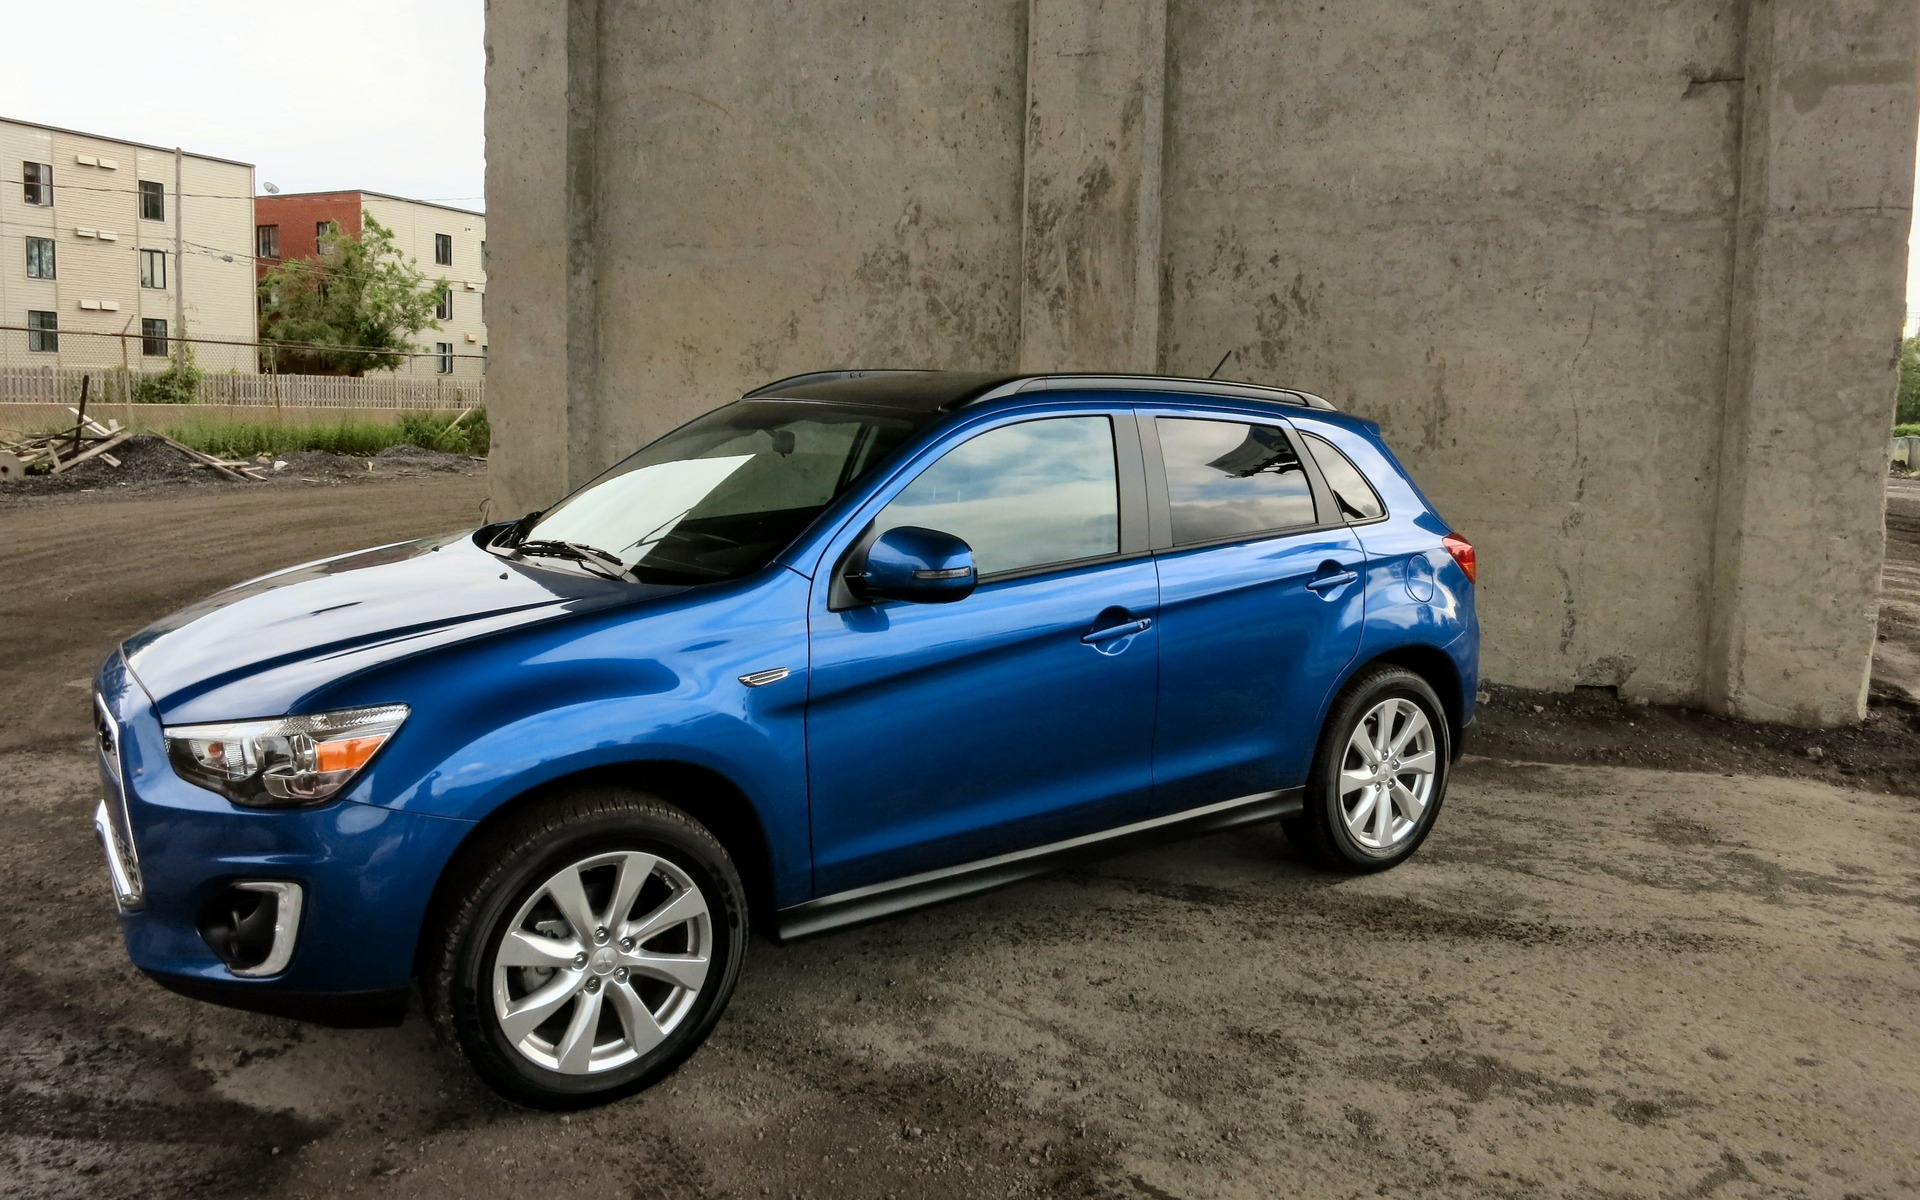 One Area Where The 2015 Mitsubishi RVR Need Make No Apology Is Styling.